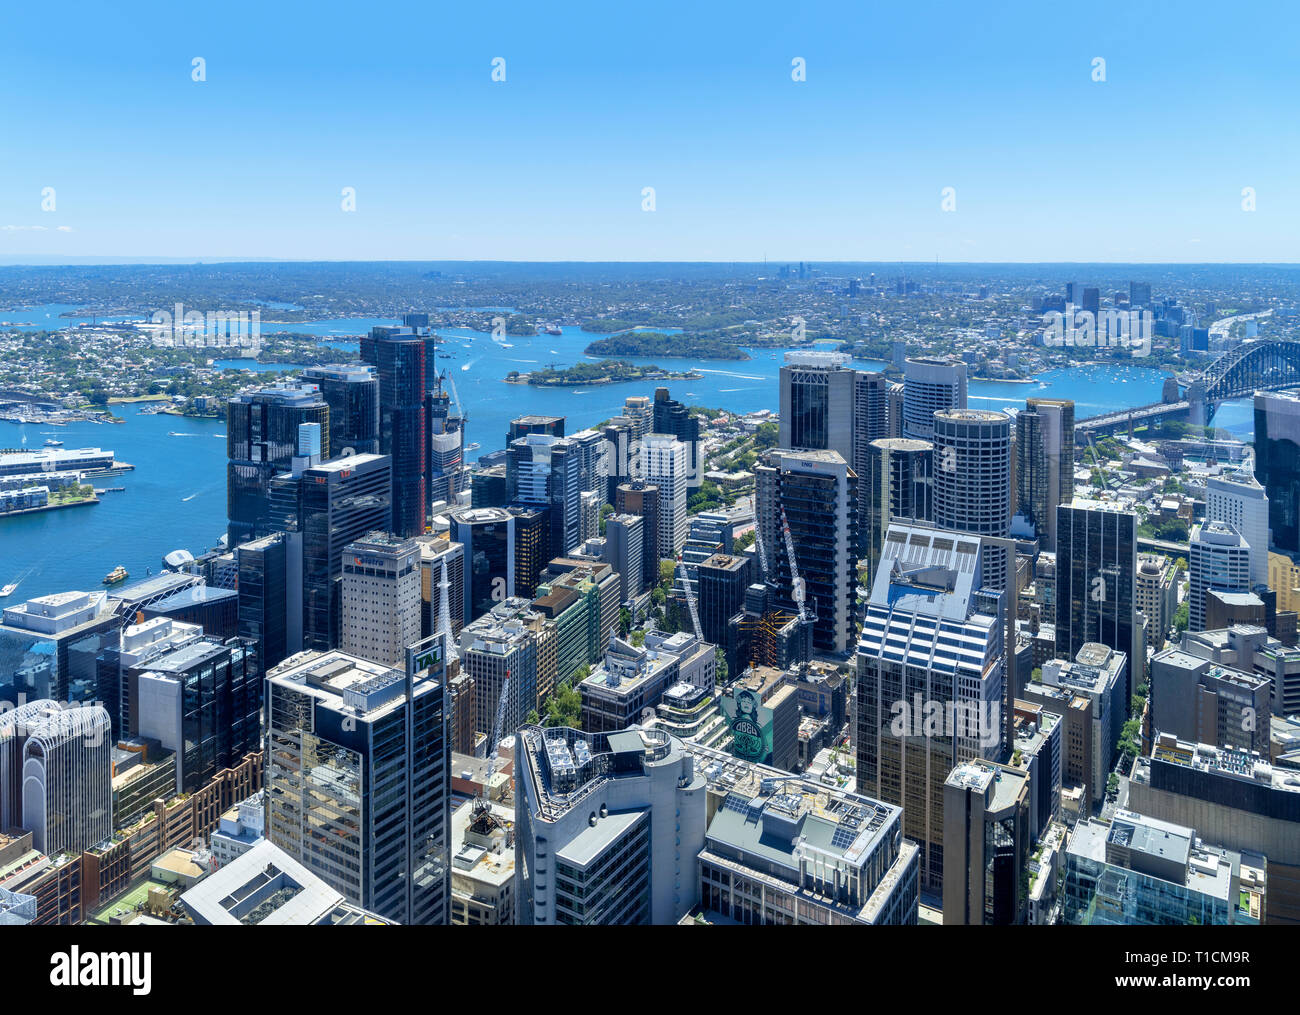 View from the Sydney Tower Eye over the Central Business District (CBD), Sydney, Australia - Stock Image